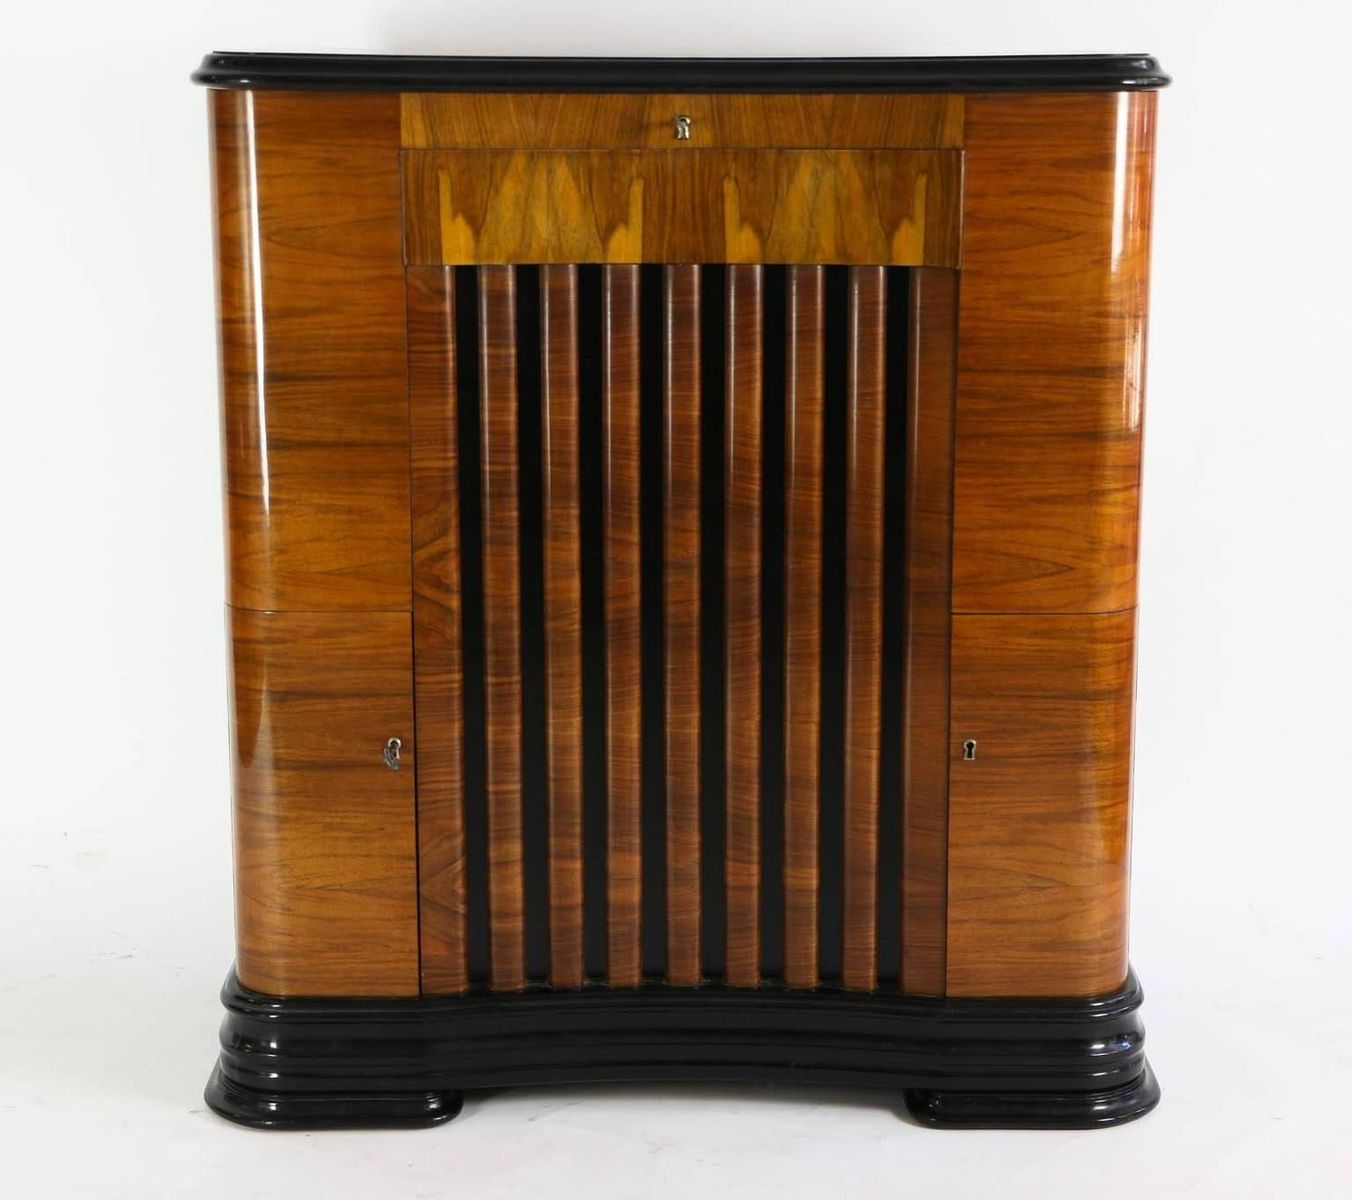 Meuble de bar art d co avec shellec en vente sur pamono for Meuble art deco belgique